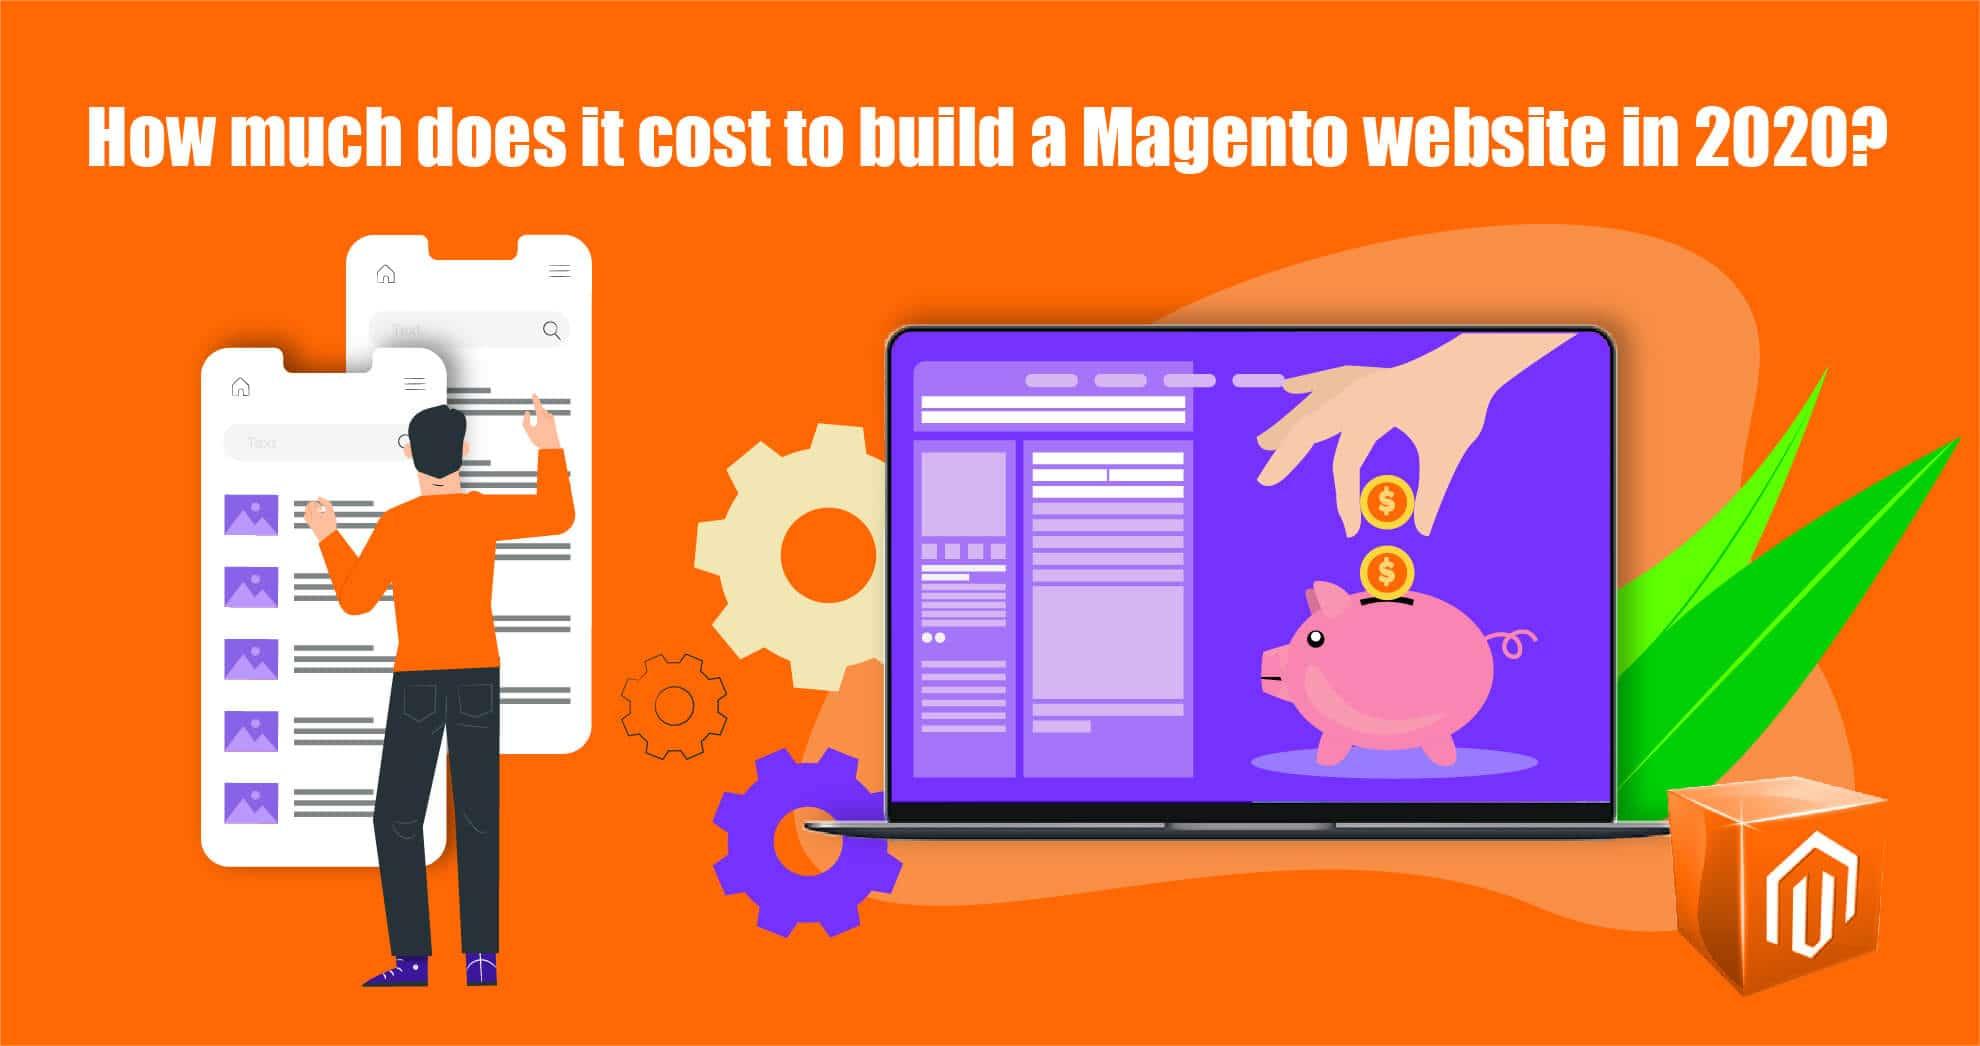 How much does it cost to build a Magento website in 2020